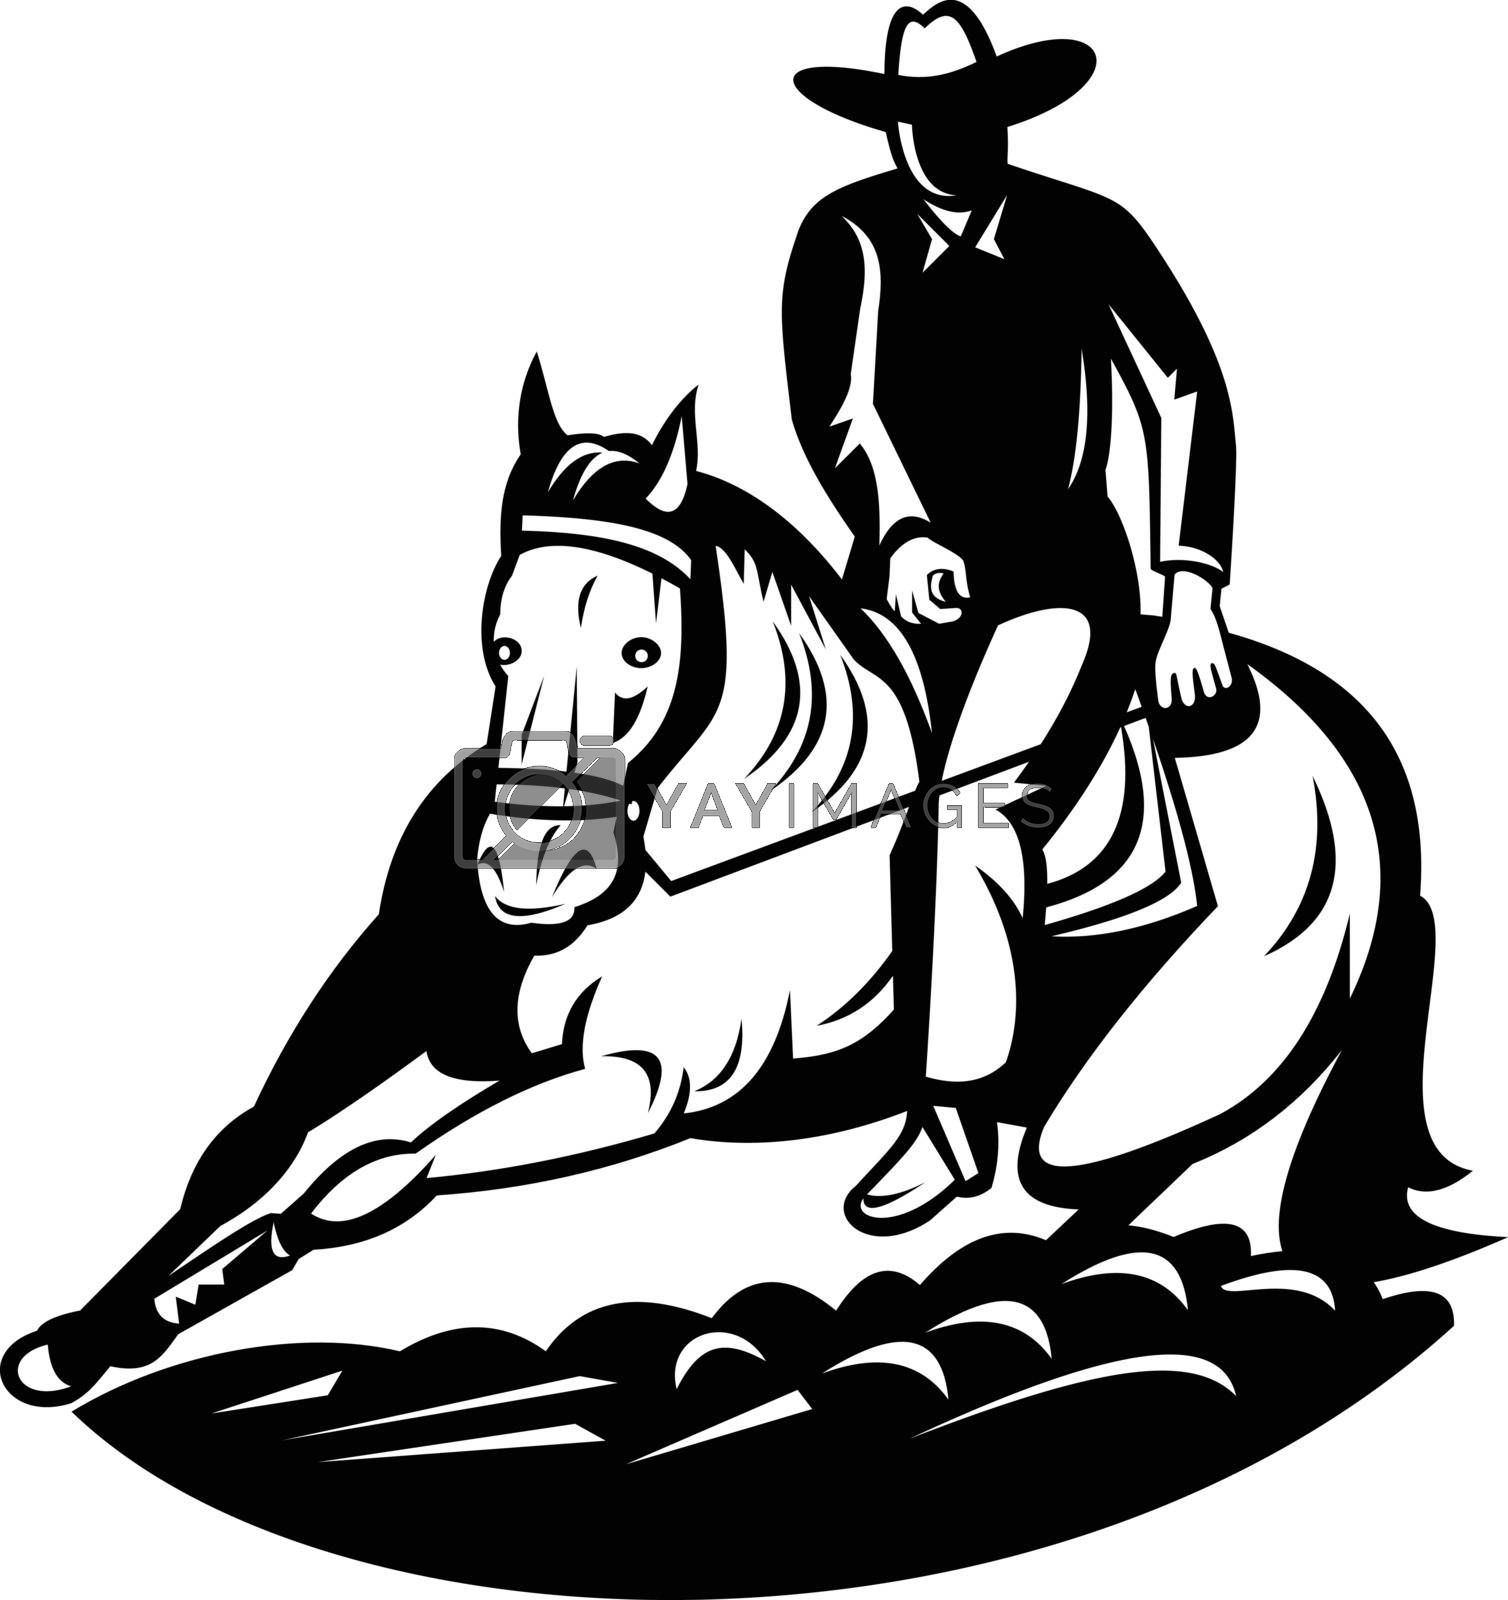 Retro style illustration of a professional rodeo cutting horse competition, a western-style equestrian competition which a horse and rider work together on isolated background done in black and white.